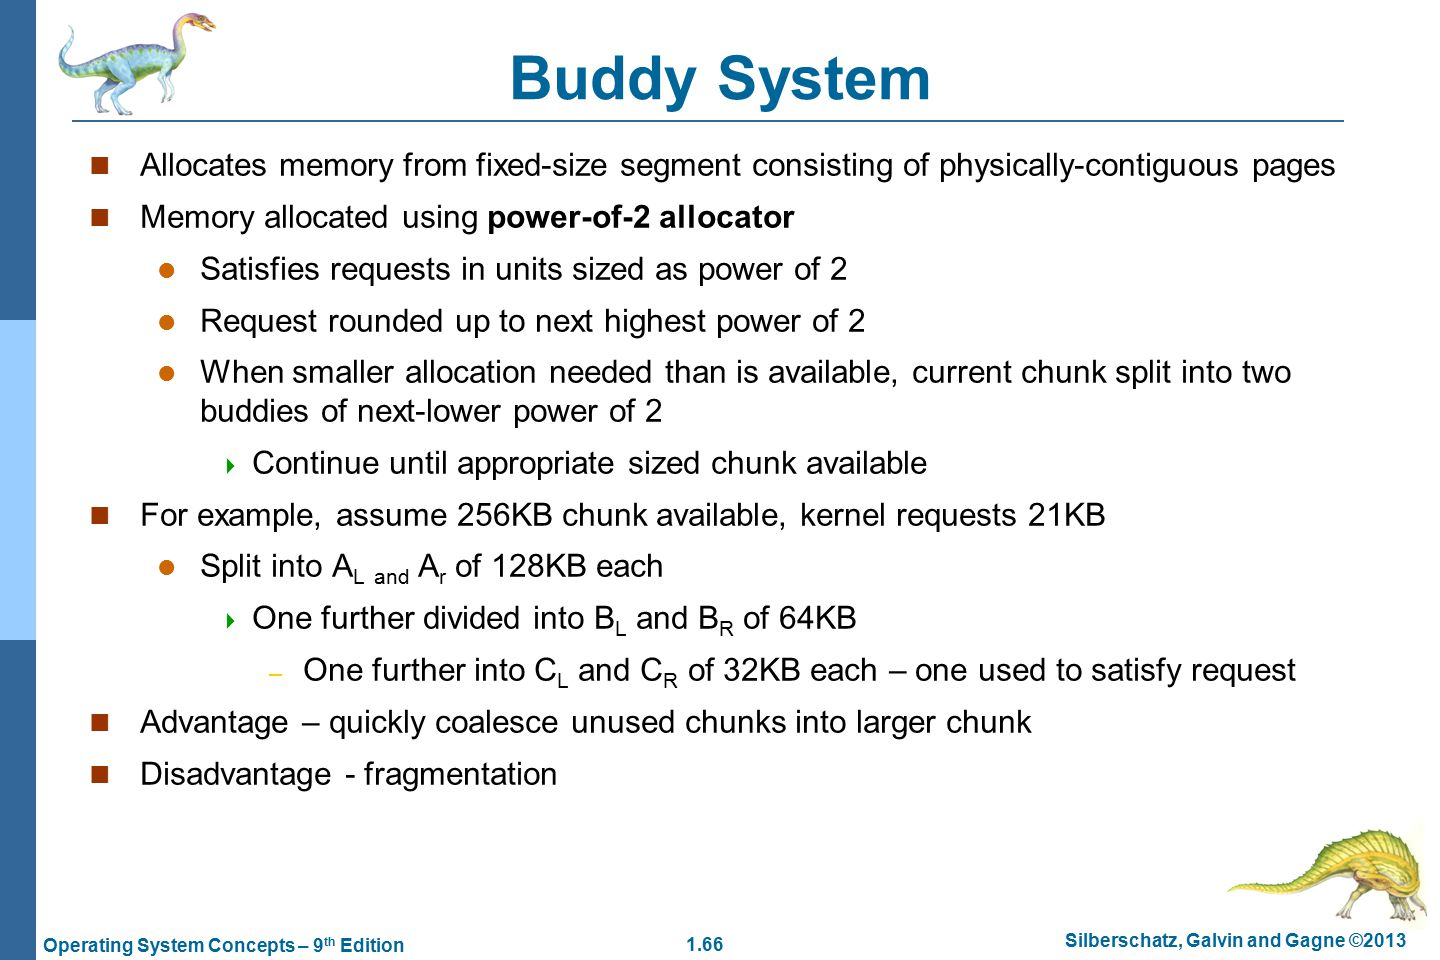 1.66 Silberschatz, Galvin and Gagne ©2013 Operating System Concepts – 9 th Edition Buddy System Allocates memory from fixed-size segment consisting of physically-contiguous pages Memory allocated using power-of-2 allocator Satisfies requests in units sized as power of 2 Request rounded up to next highest power of 2 When smaller allocation needed than is available, current chunk split into two buddies of next-lower power of 2  Continue until appropriate sized chunk available For example, assume 256KB chunk available, kernel requests 21KB Split into A L and A r of 128KB each  One further divided into B L and B R of 64KB – One further into C L and C R of 32KB each – one used to satisfy request Advantage – quickly coalesce unused chunks into larger chunk Disadvantage - fragmentation